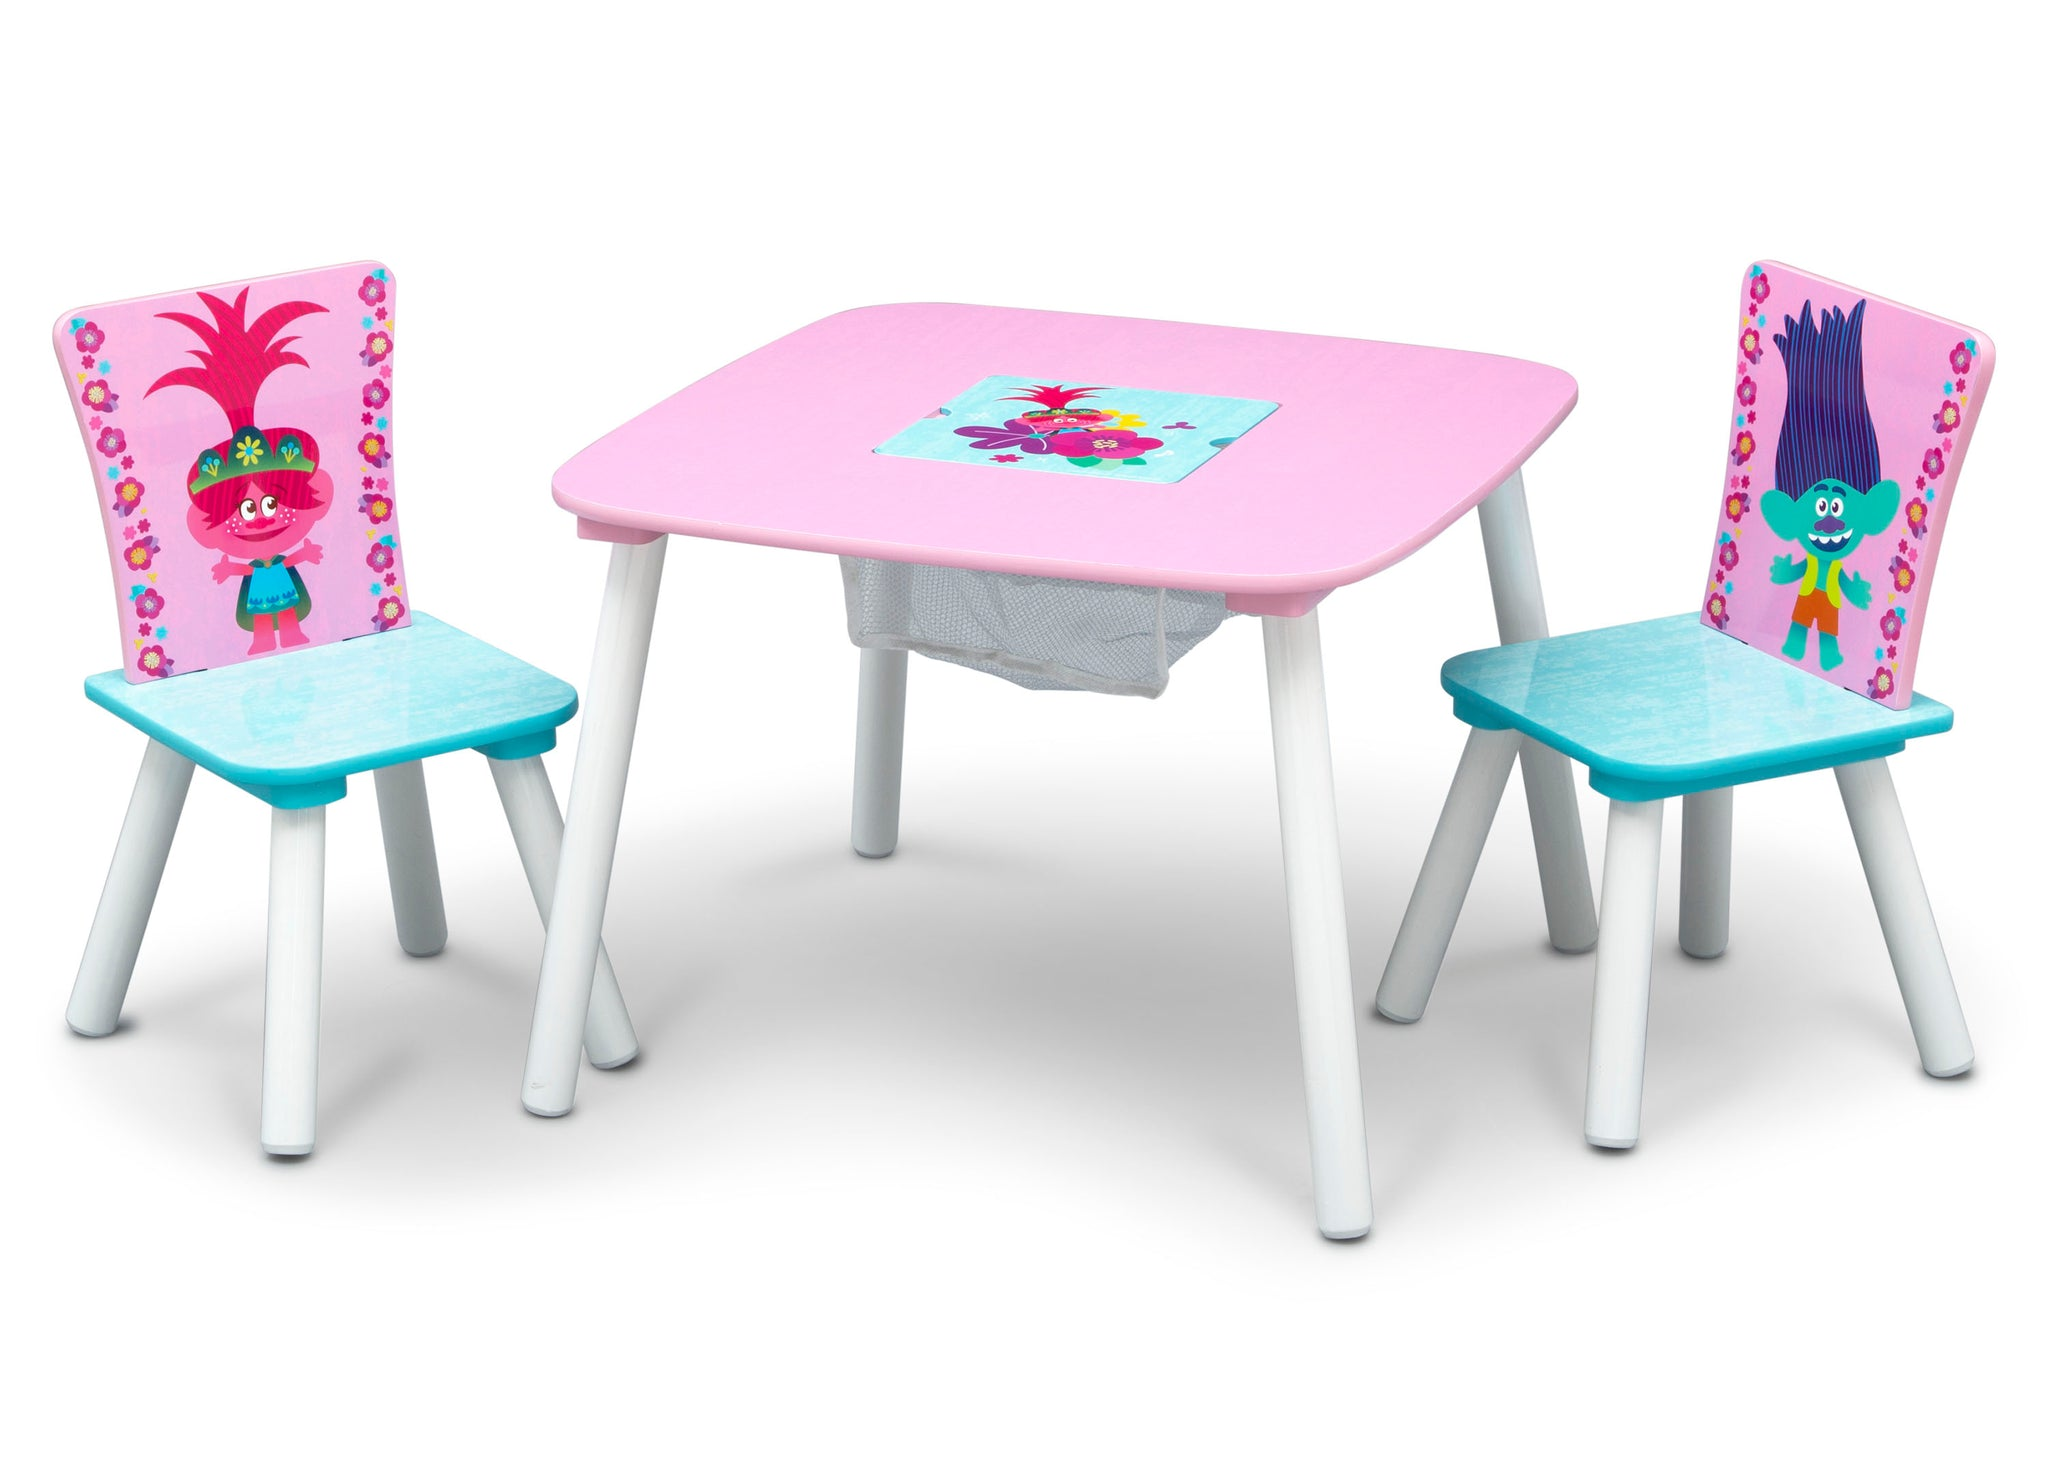 Delta Children Trolls World Tour (1177) Table and Chair Set with Storage, Left Silo View